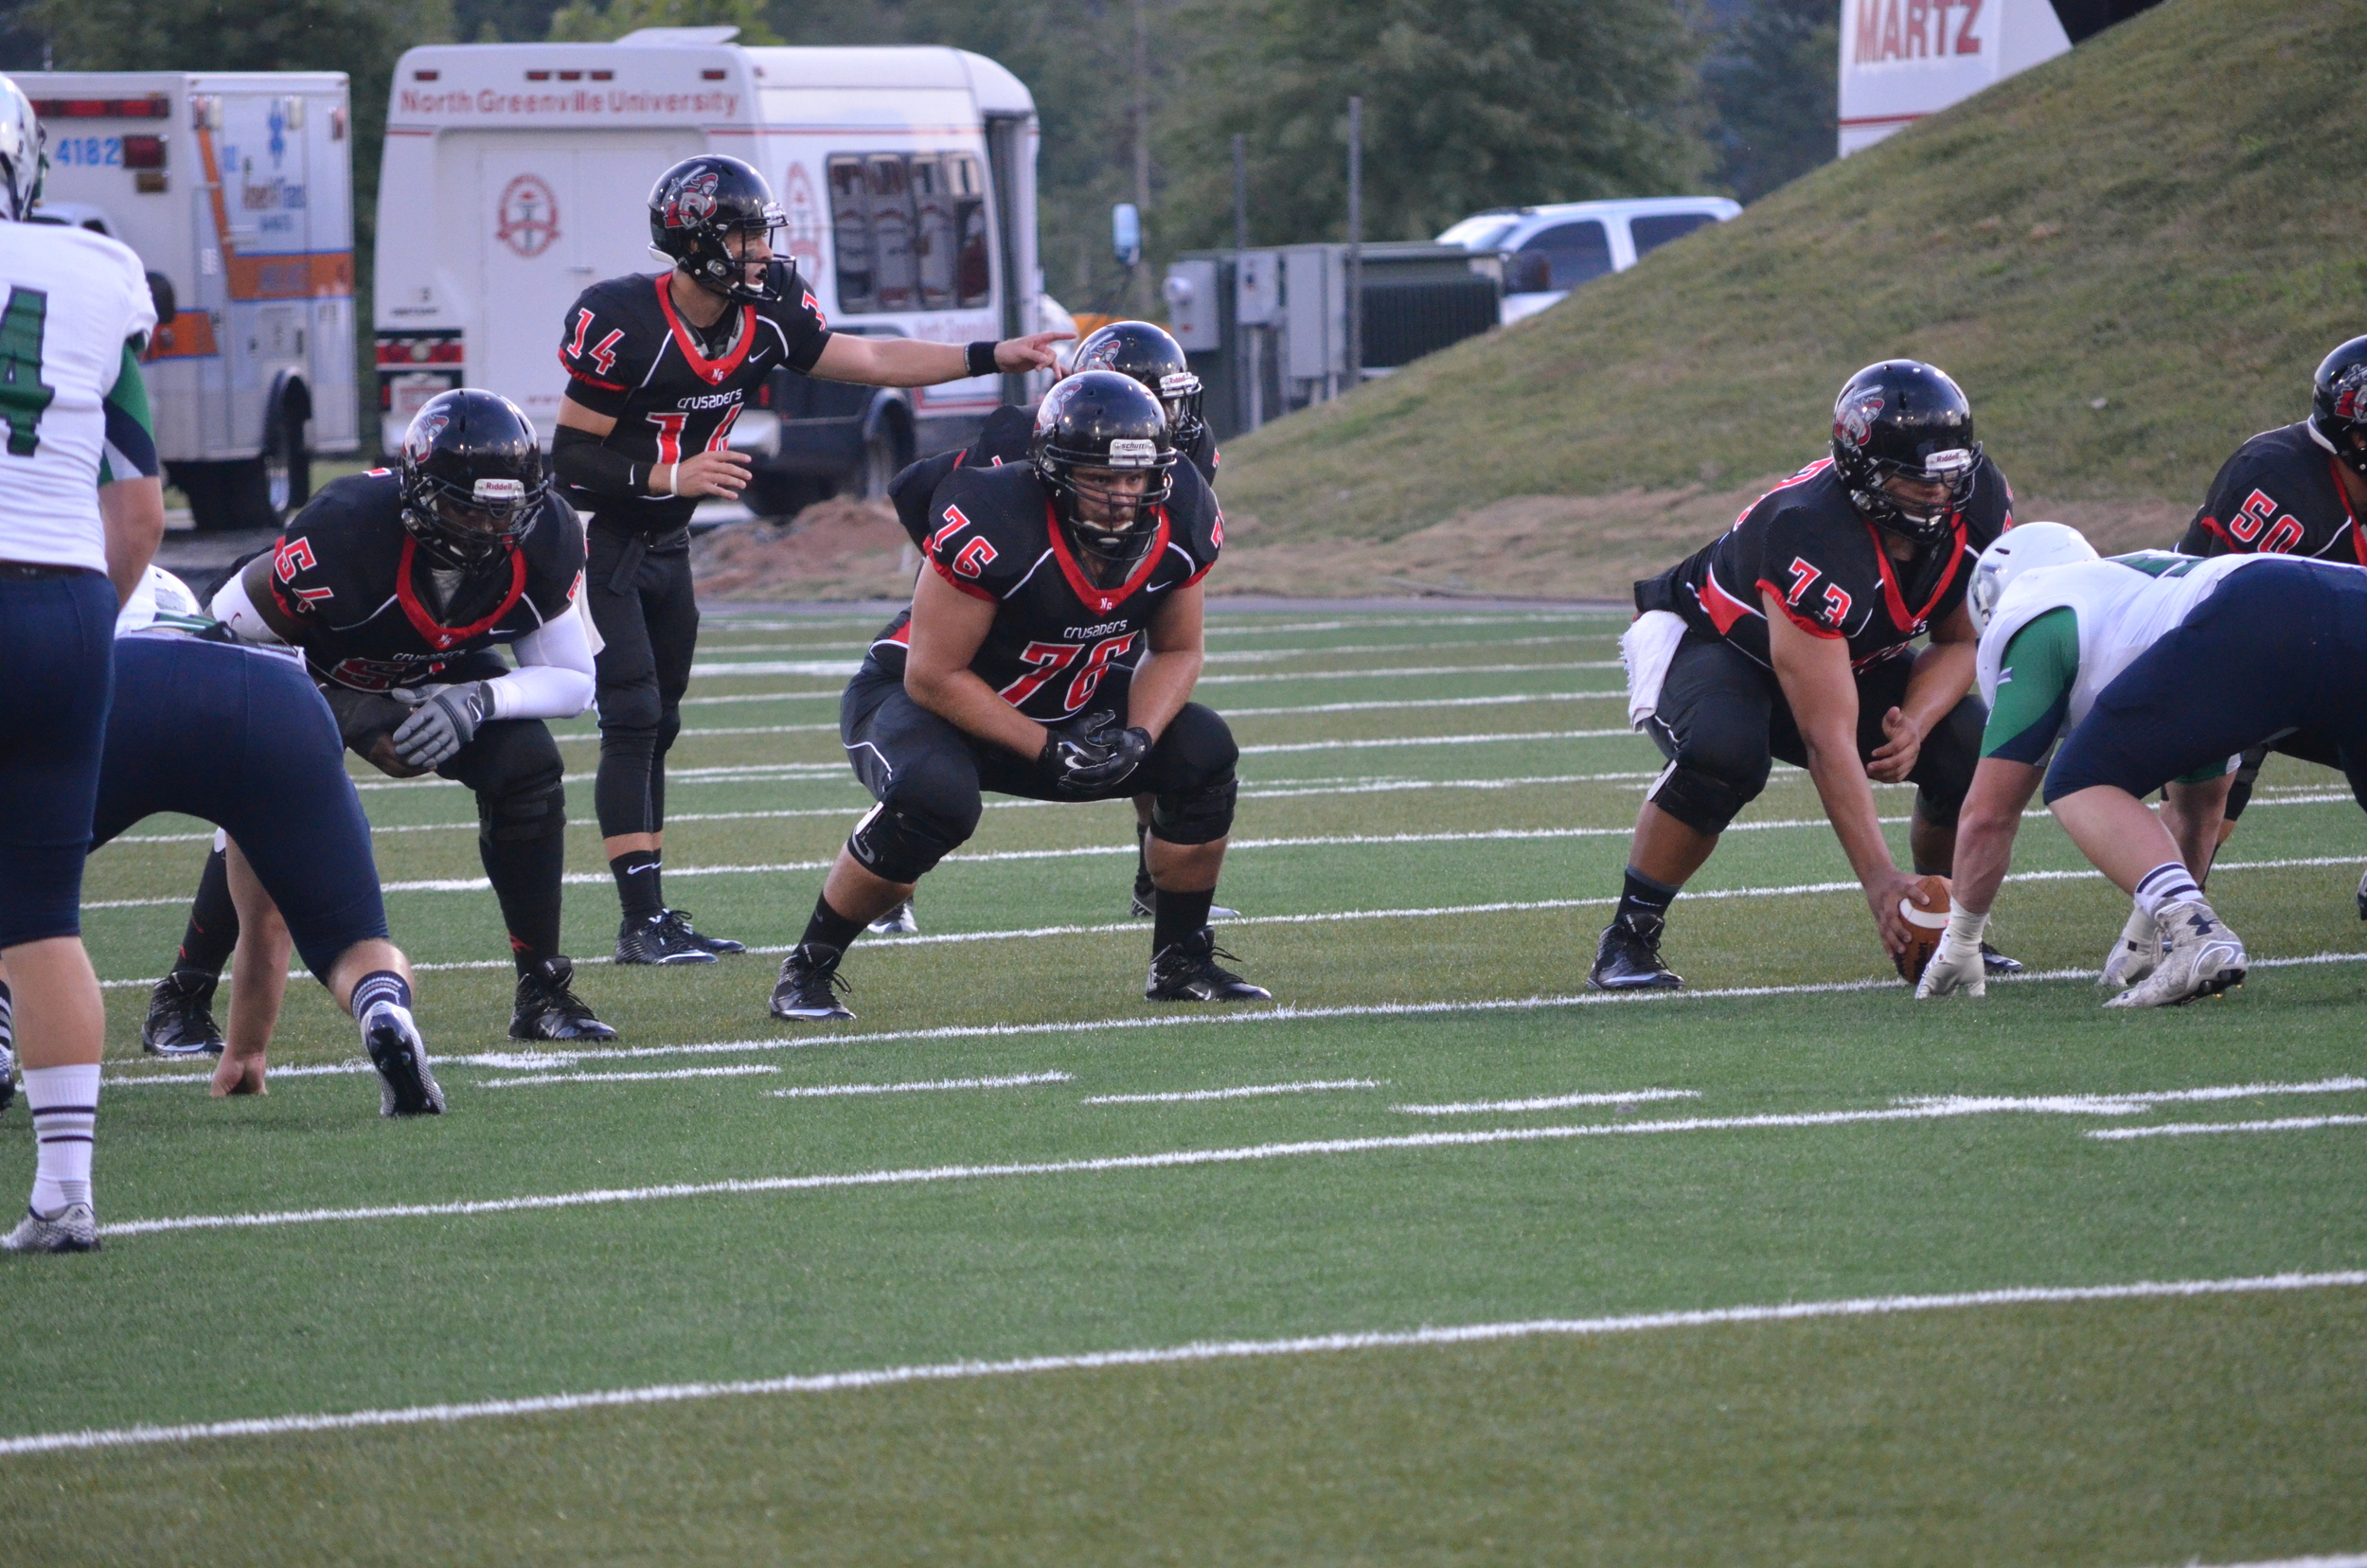 The Crusaders prepare for the first down of the first quarter